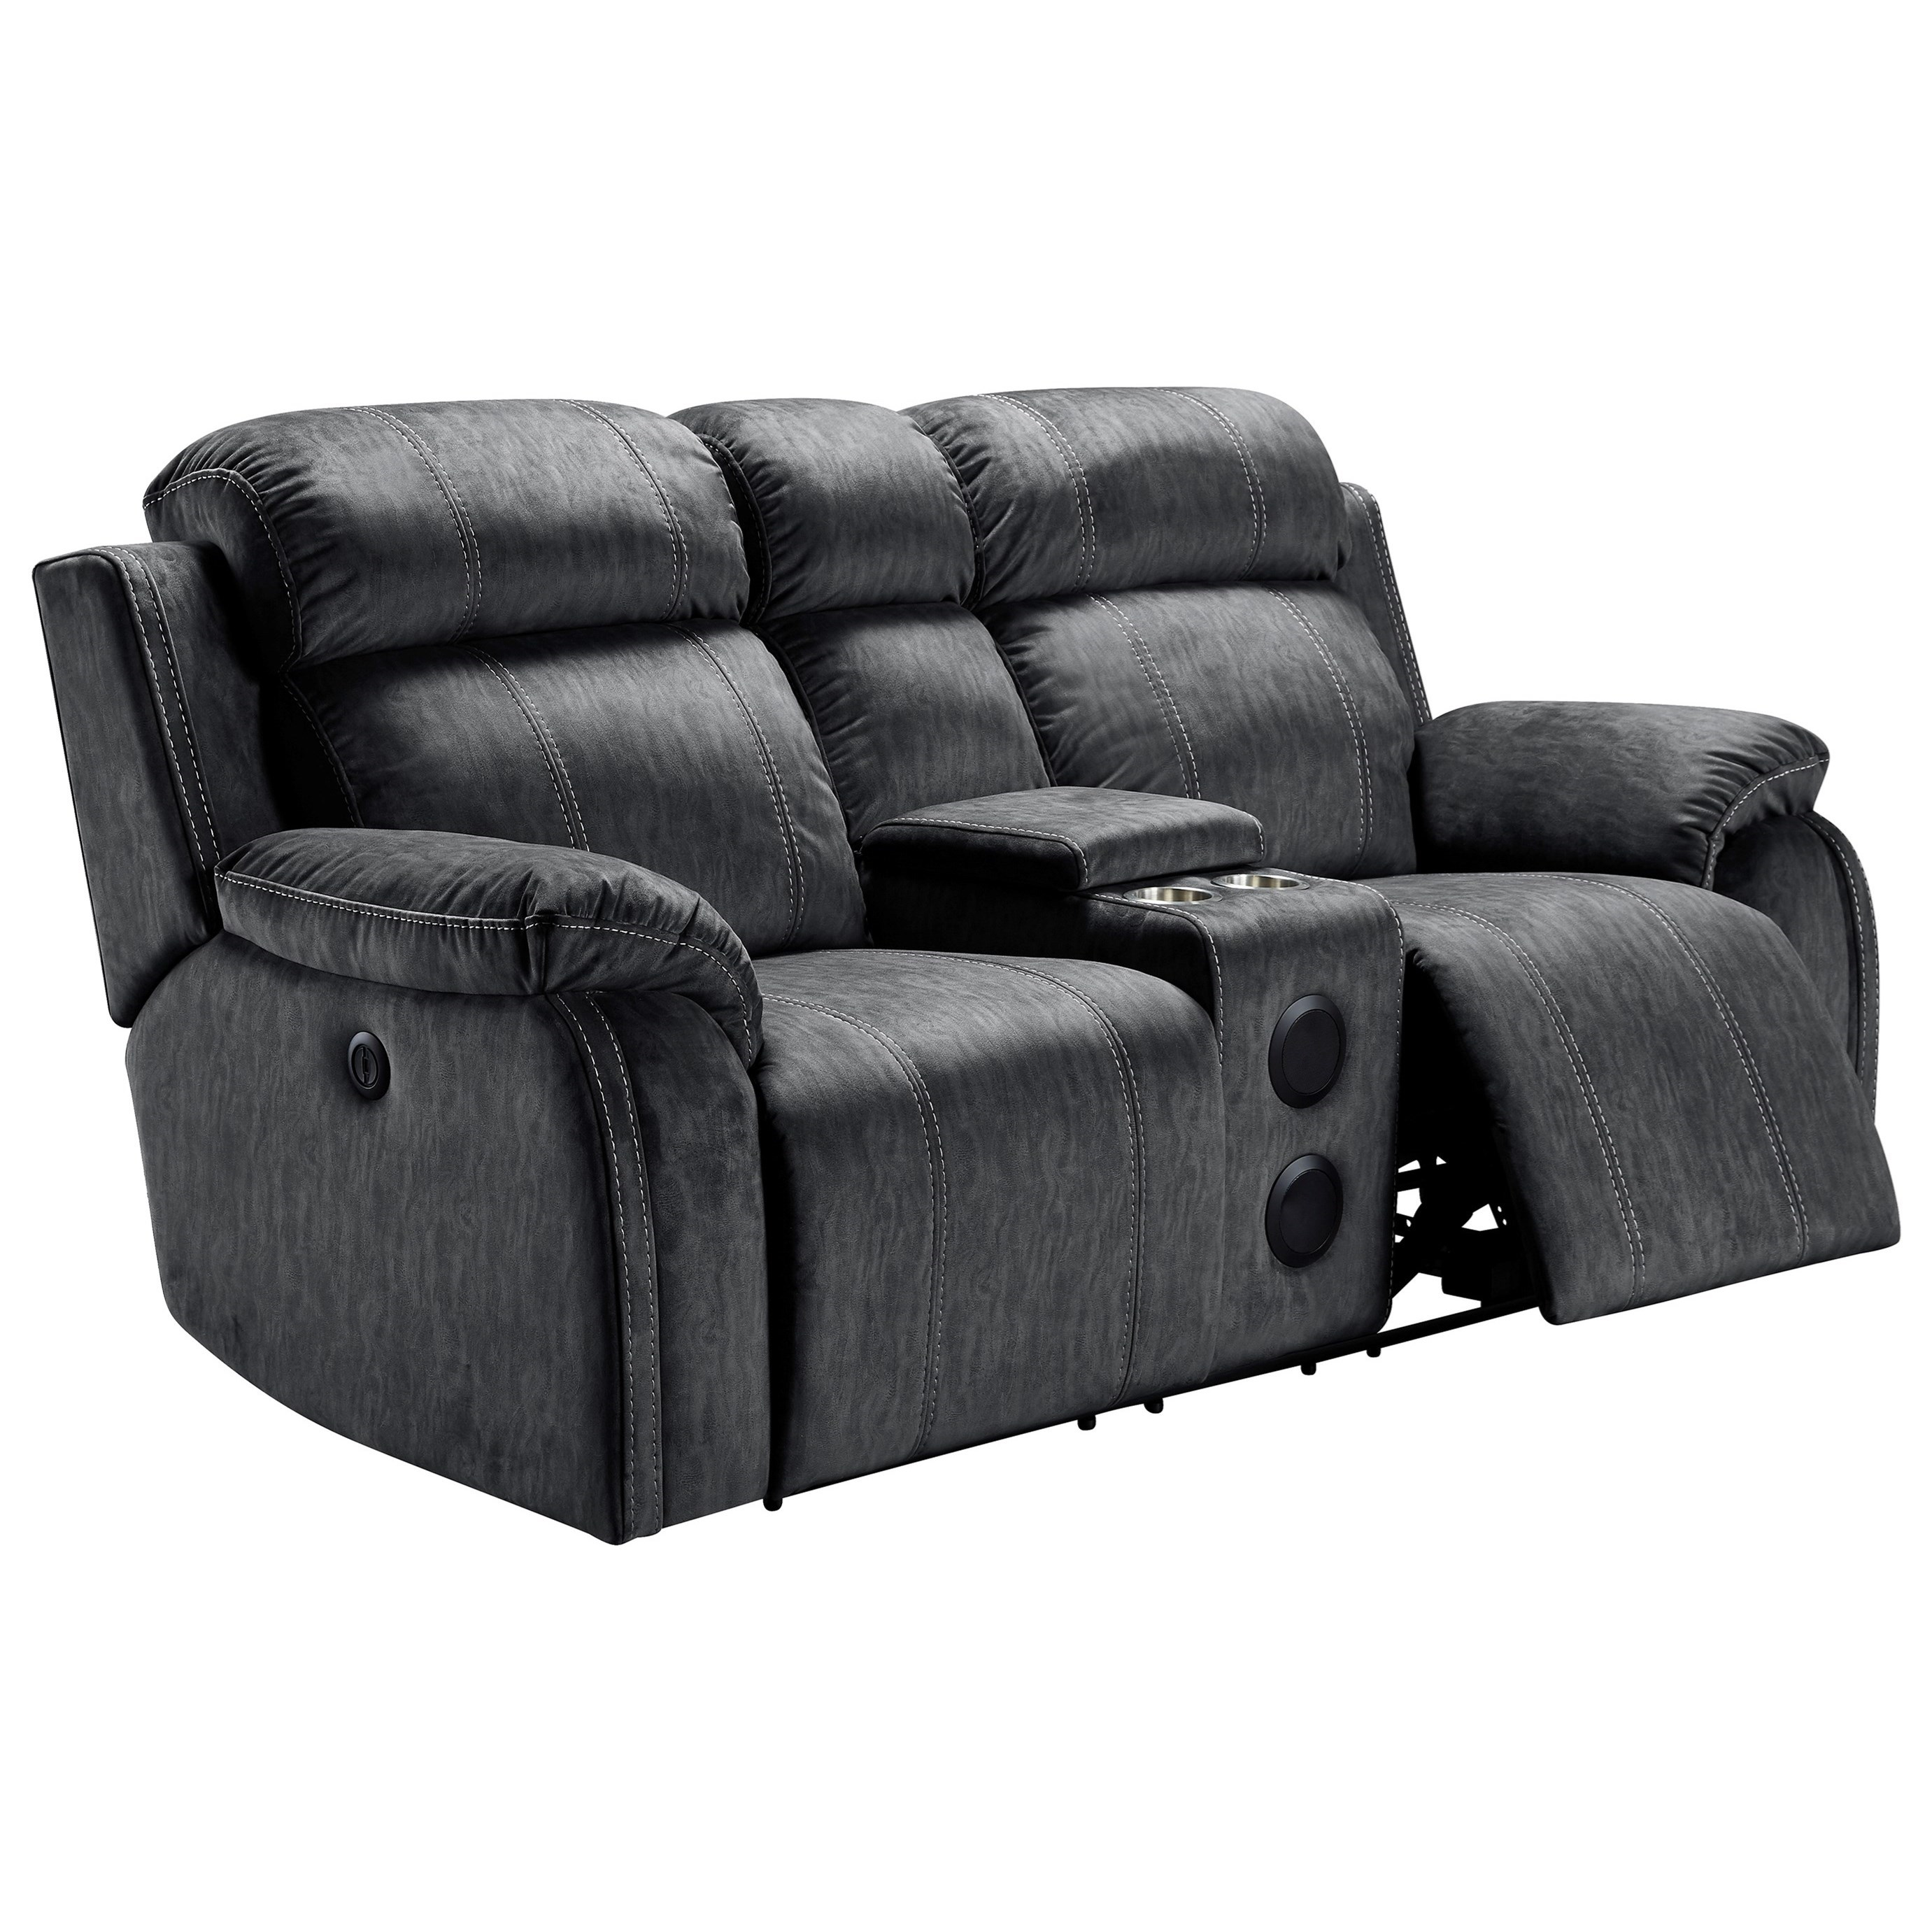 Tango Power Reclining Console Loveseat by New Classic at H.L. Stephens